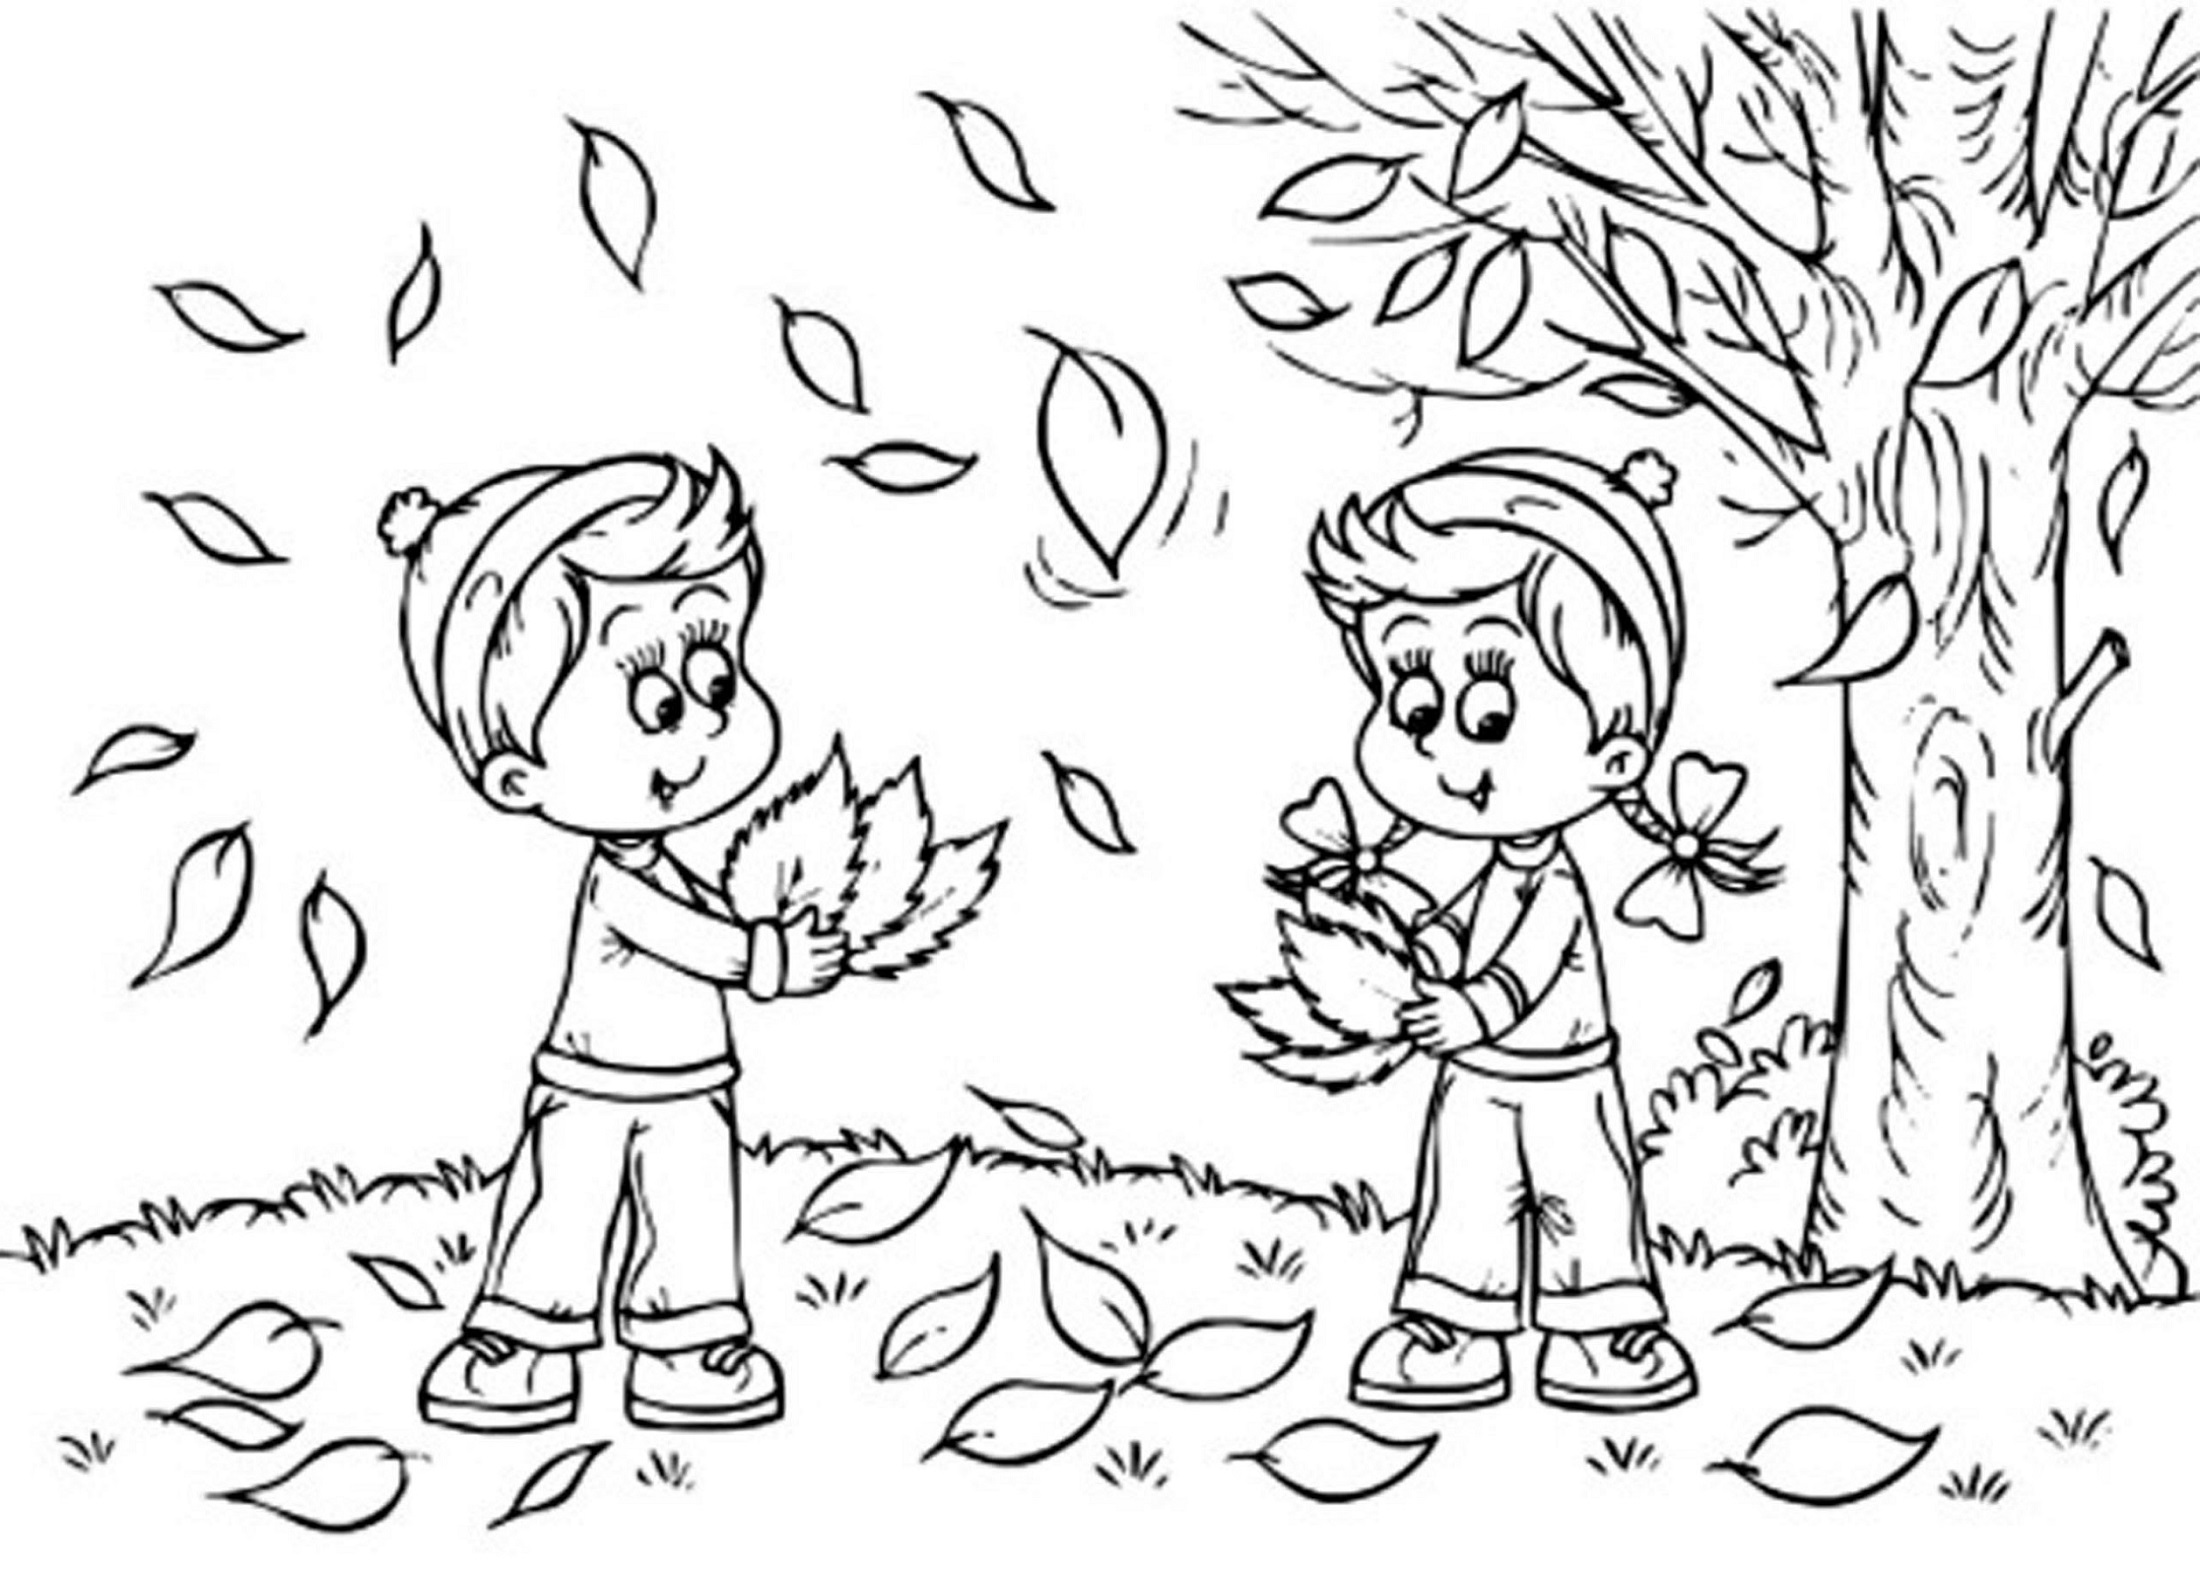 Fall Color Pages Printable In Coloring For Kids 235x190: Fall Coloring Pages For Kindergarten